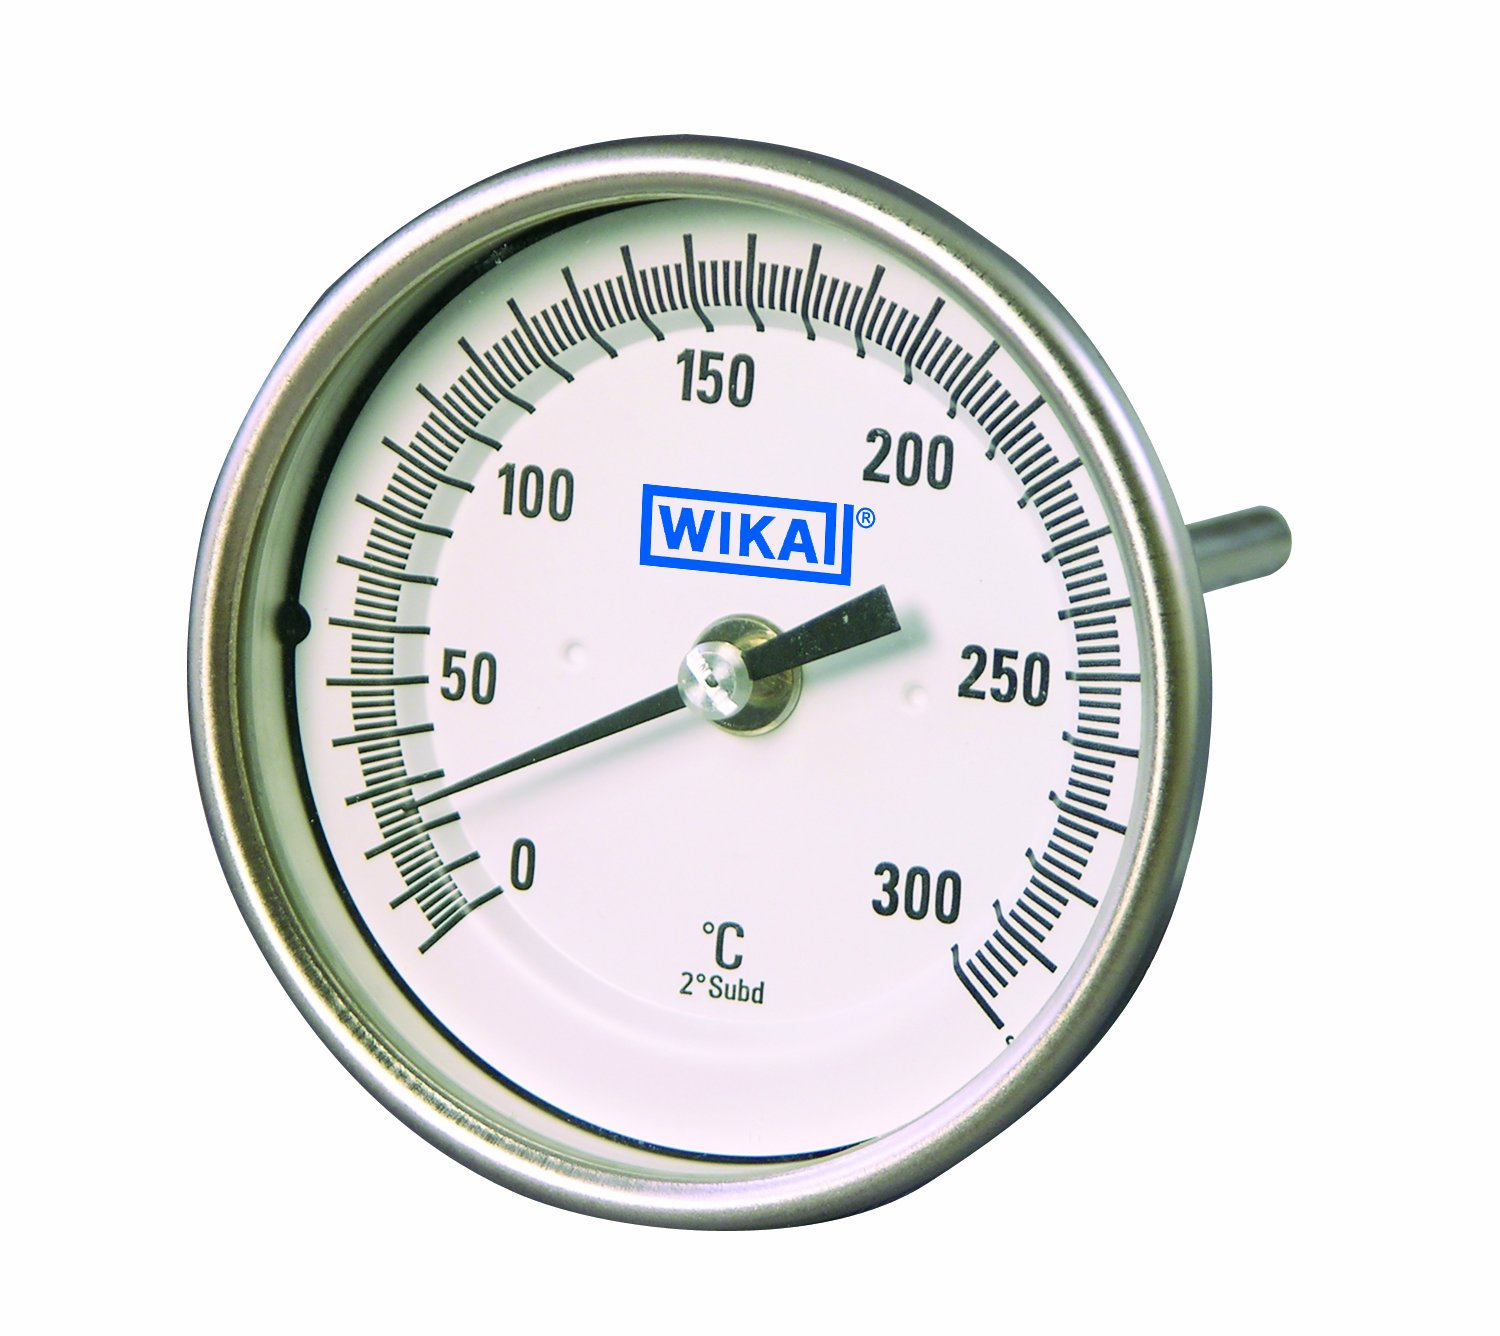 WIKA TI.33 Stainless Steel 304 Industrial Grade Non Resettable Bi-Metal Thermometer, 3'' Dial, 50/550 Degrees F, 9'' Stem, 1/2'' NPT Connection, Back Mount